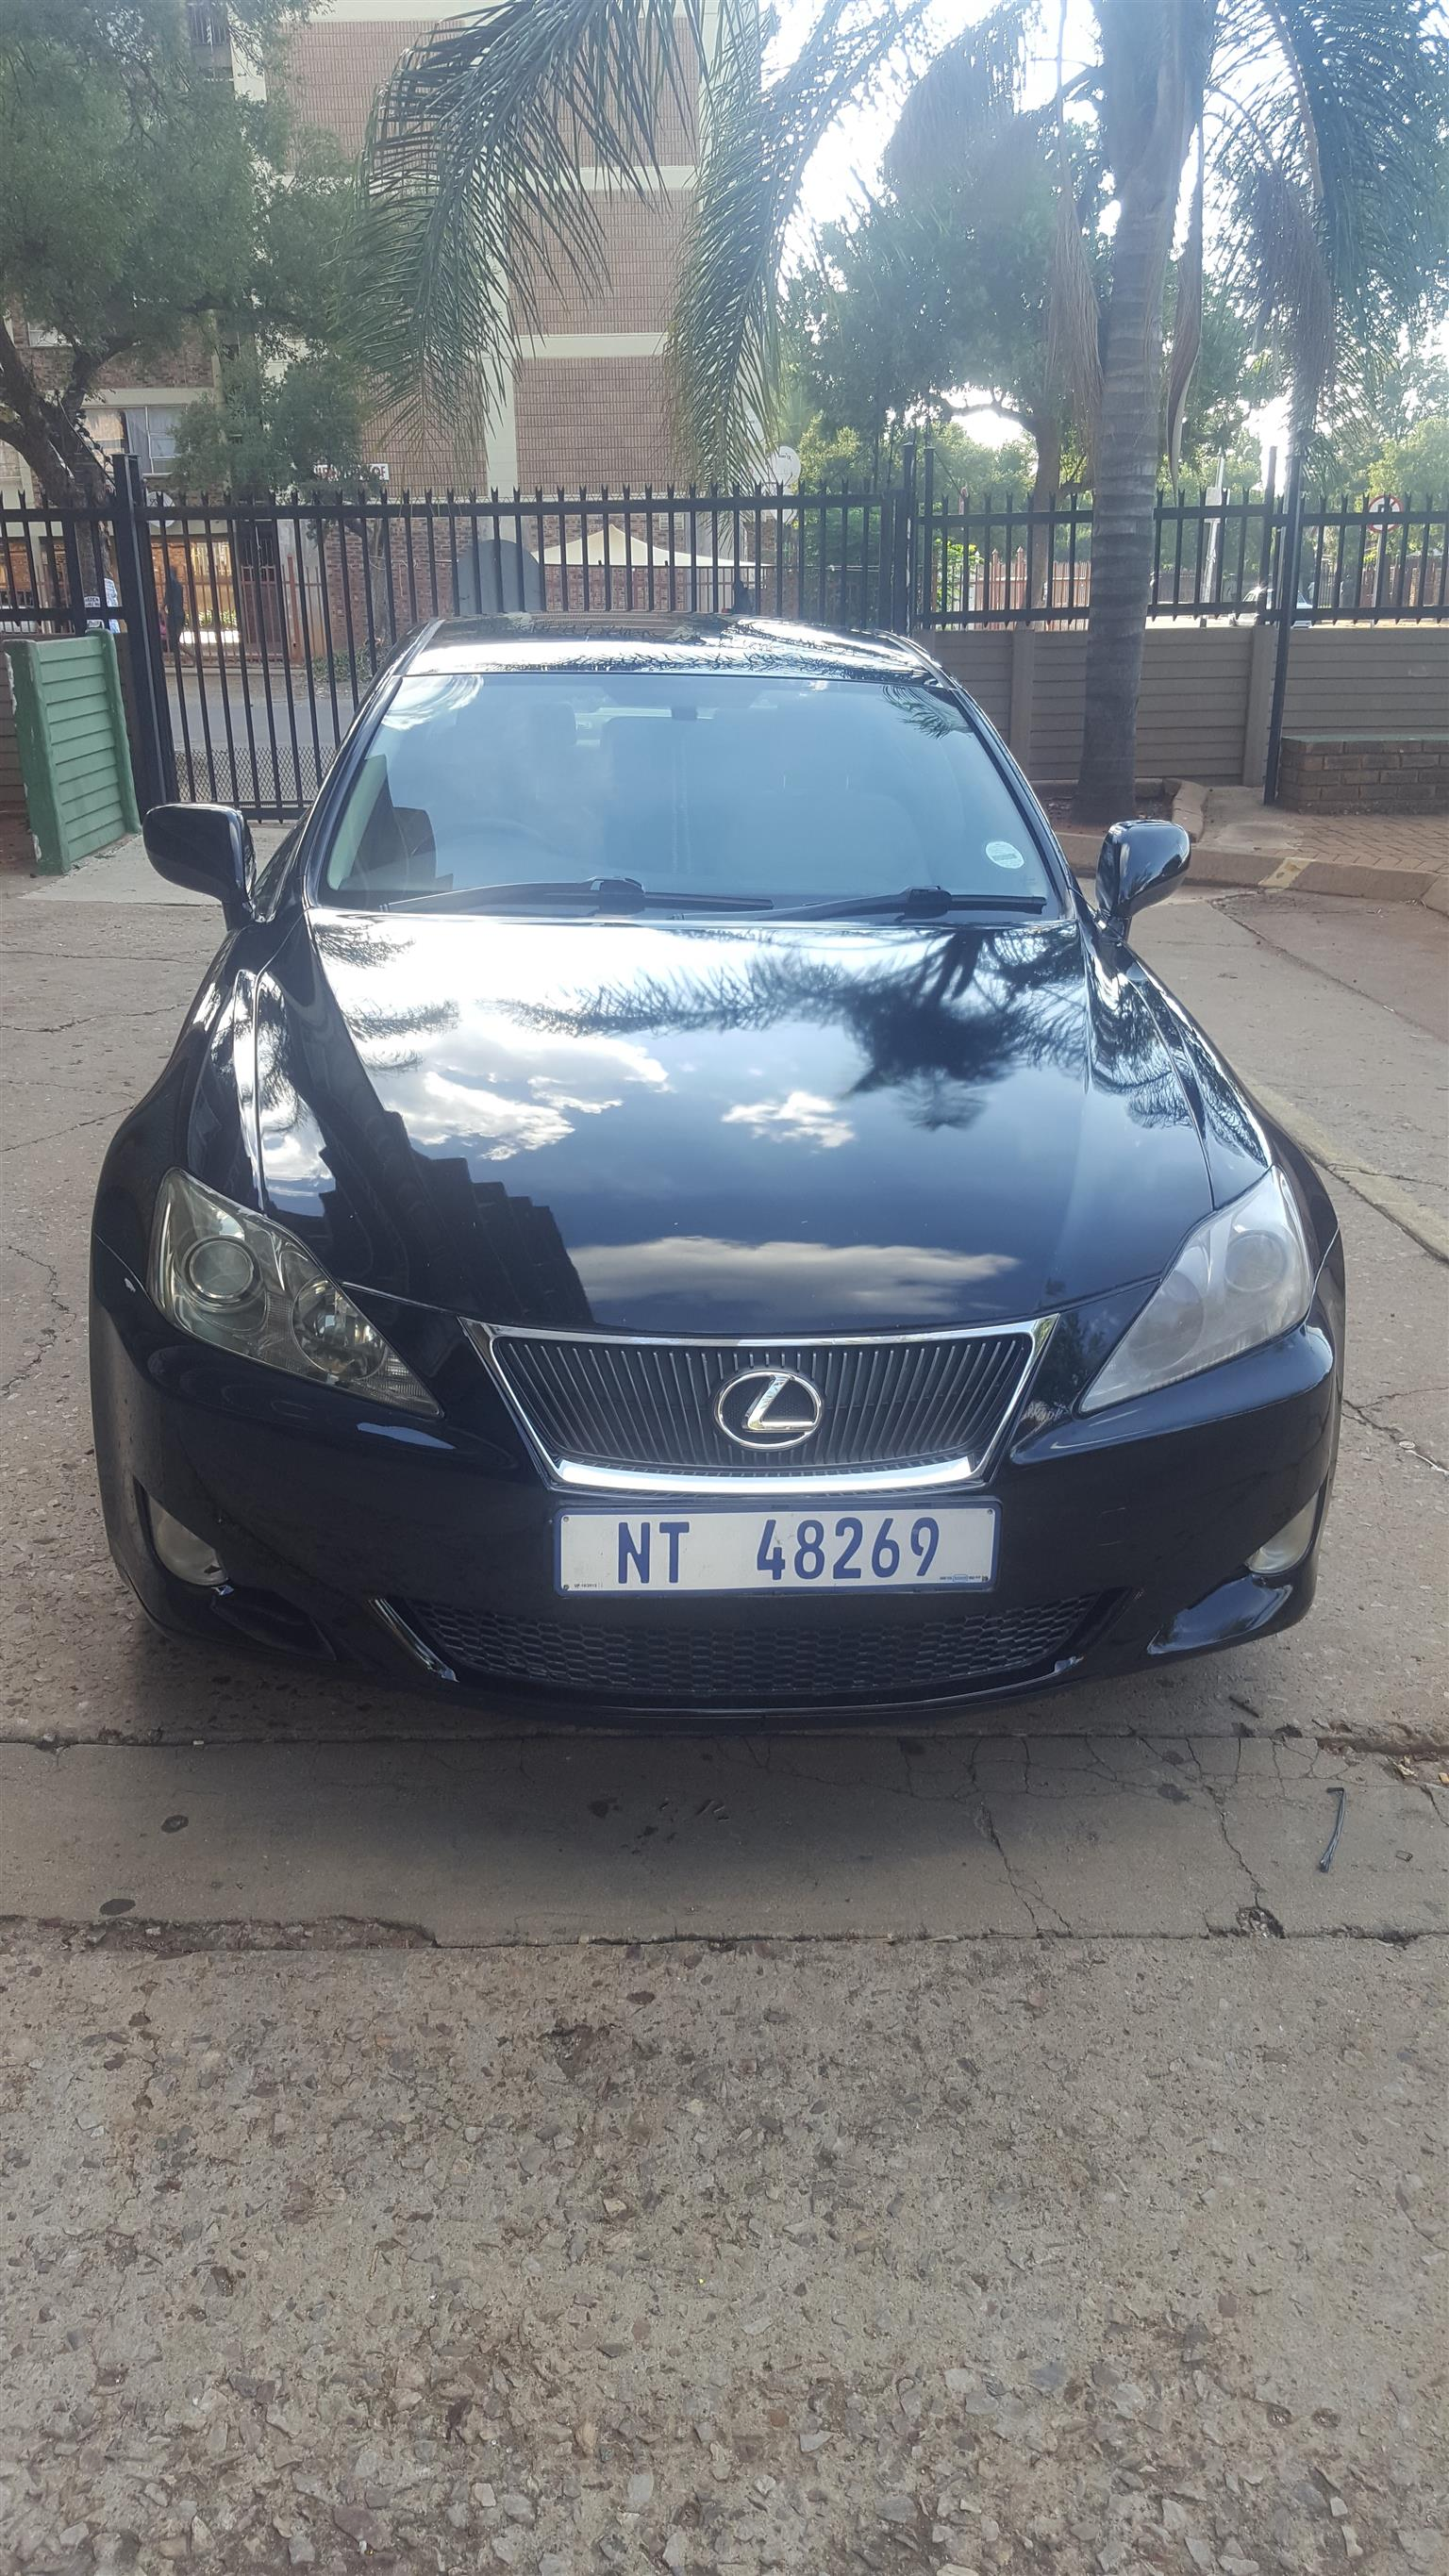 2006 Lexus IS 250 automatic  3a83bb15212